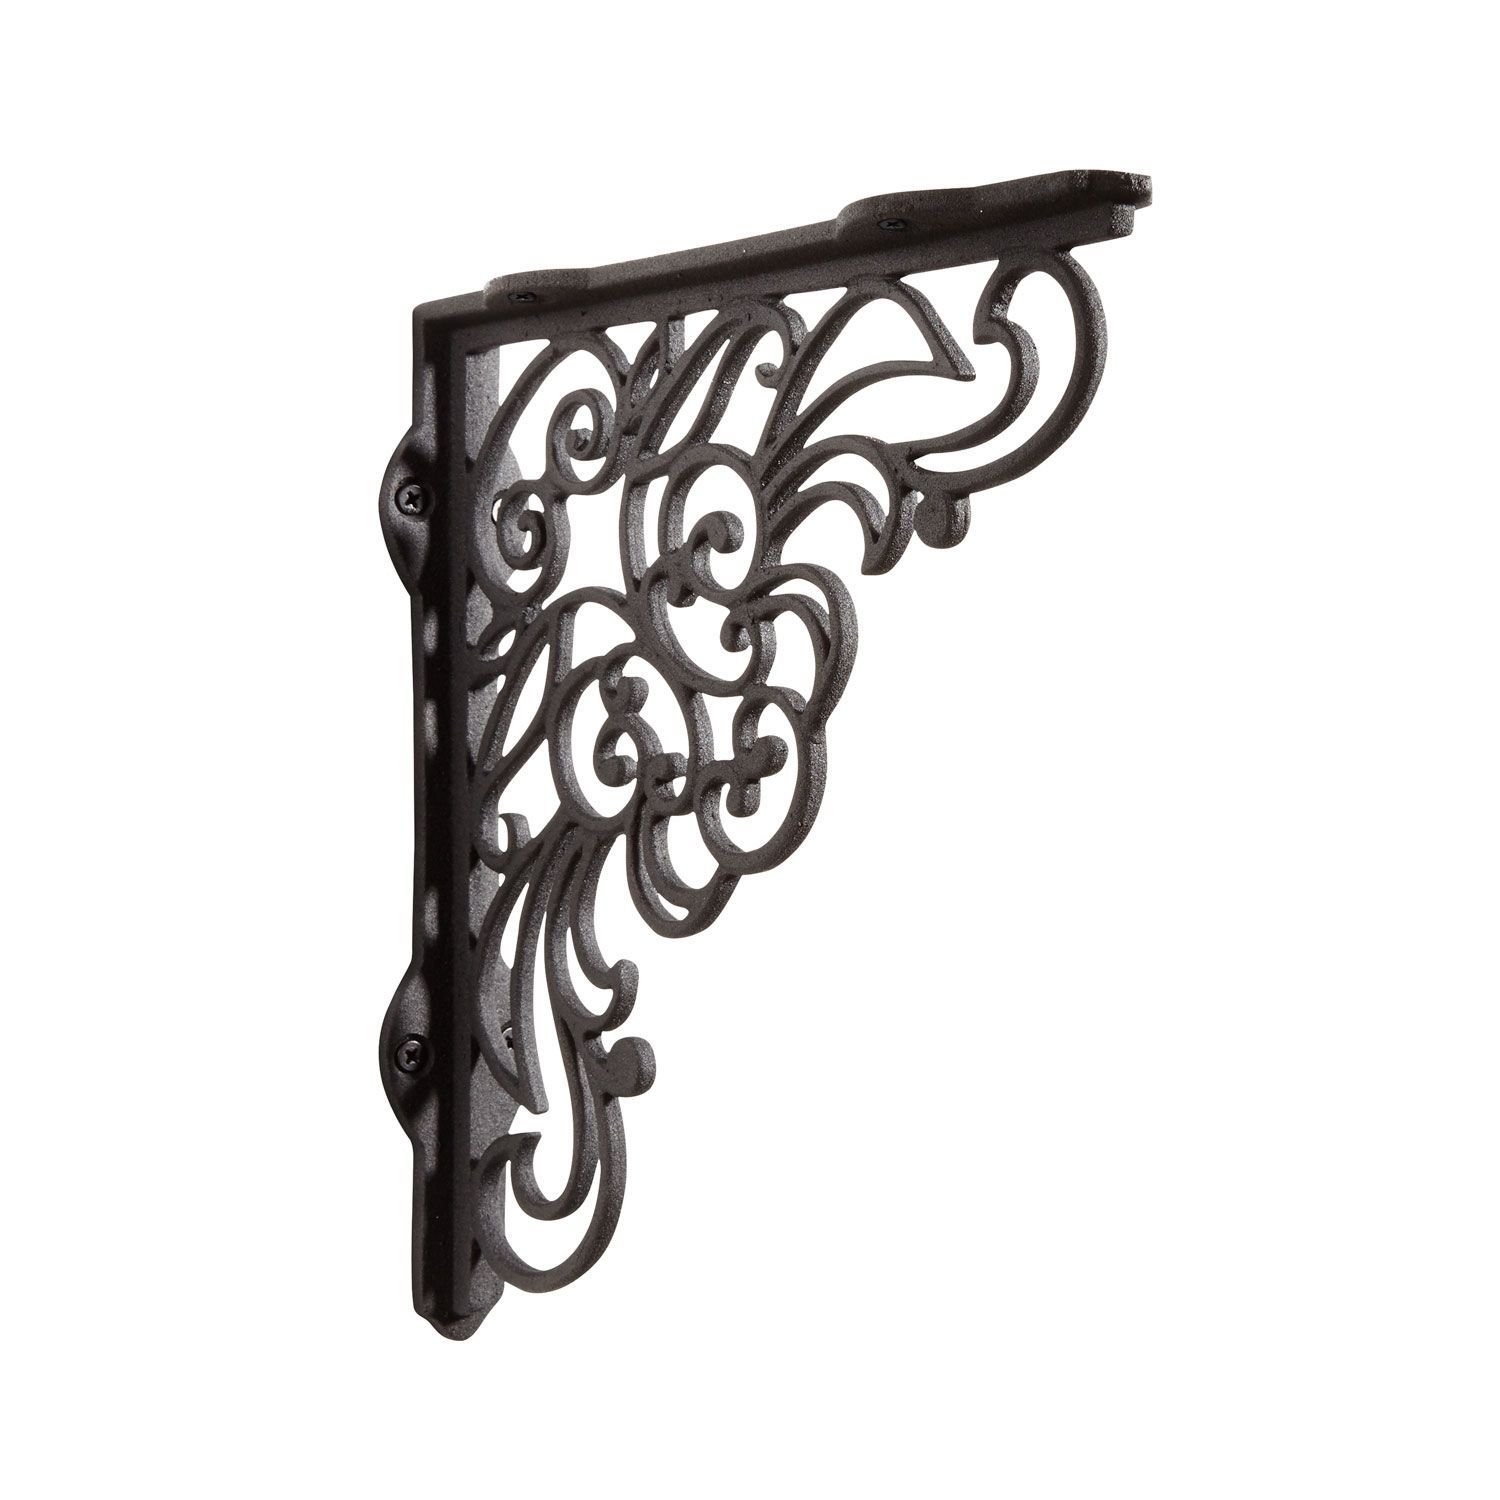 Antique Lace Cast Iron Shelf Bracket - Black Powder Coat